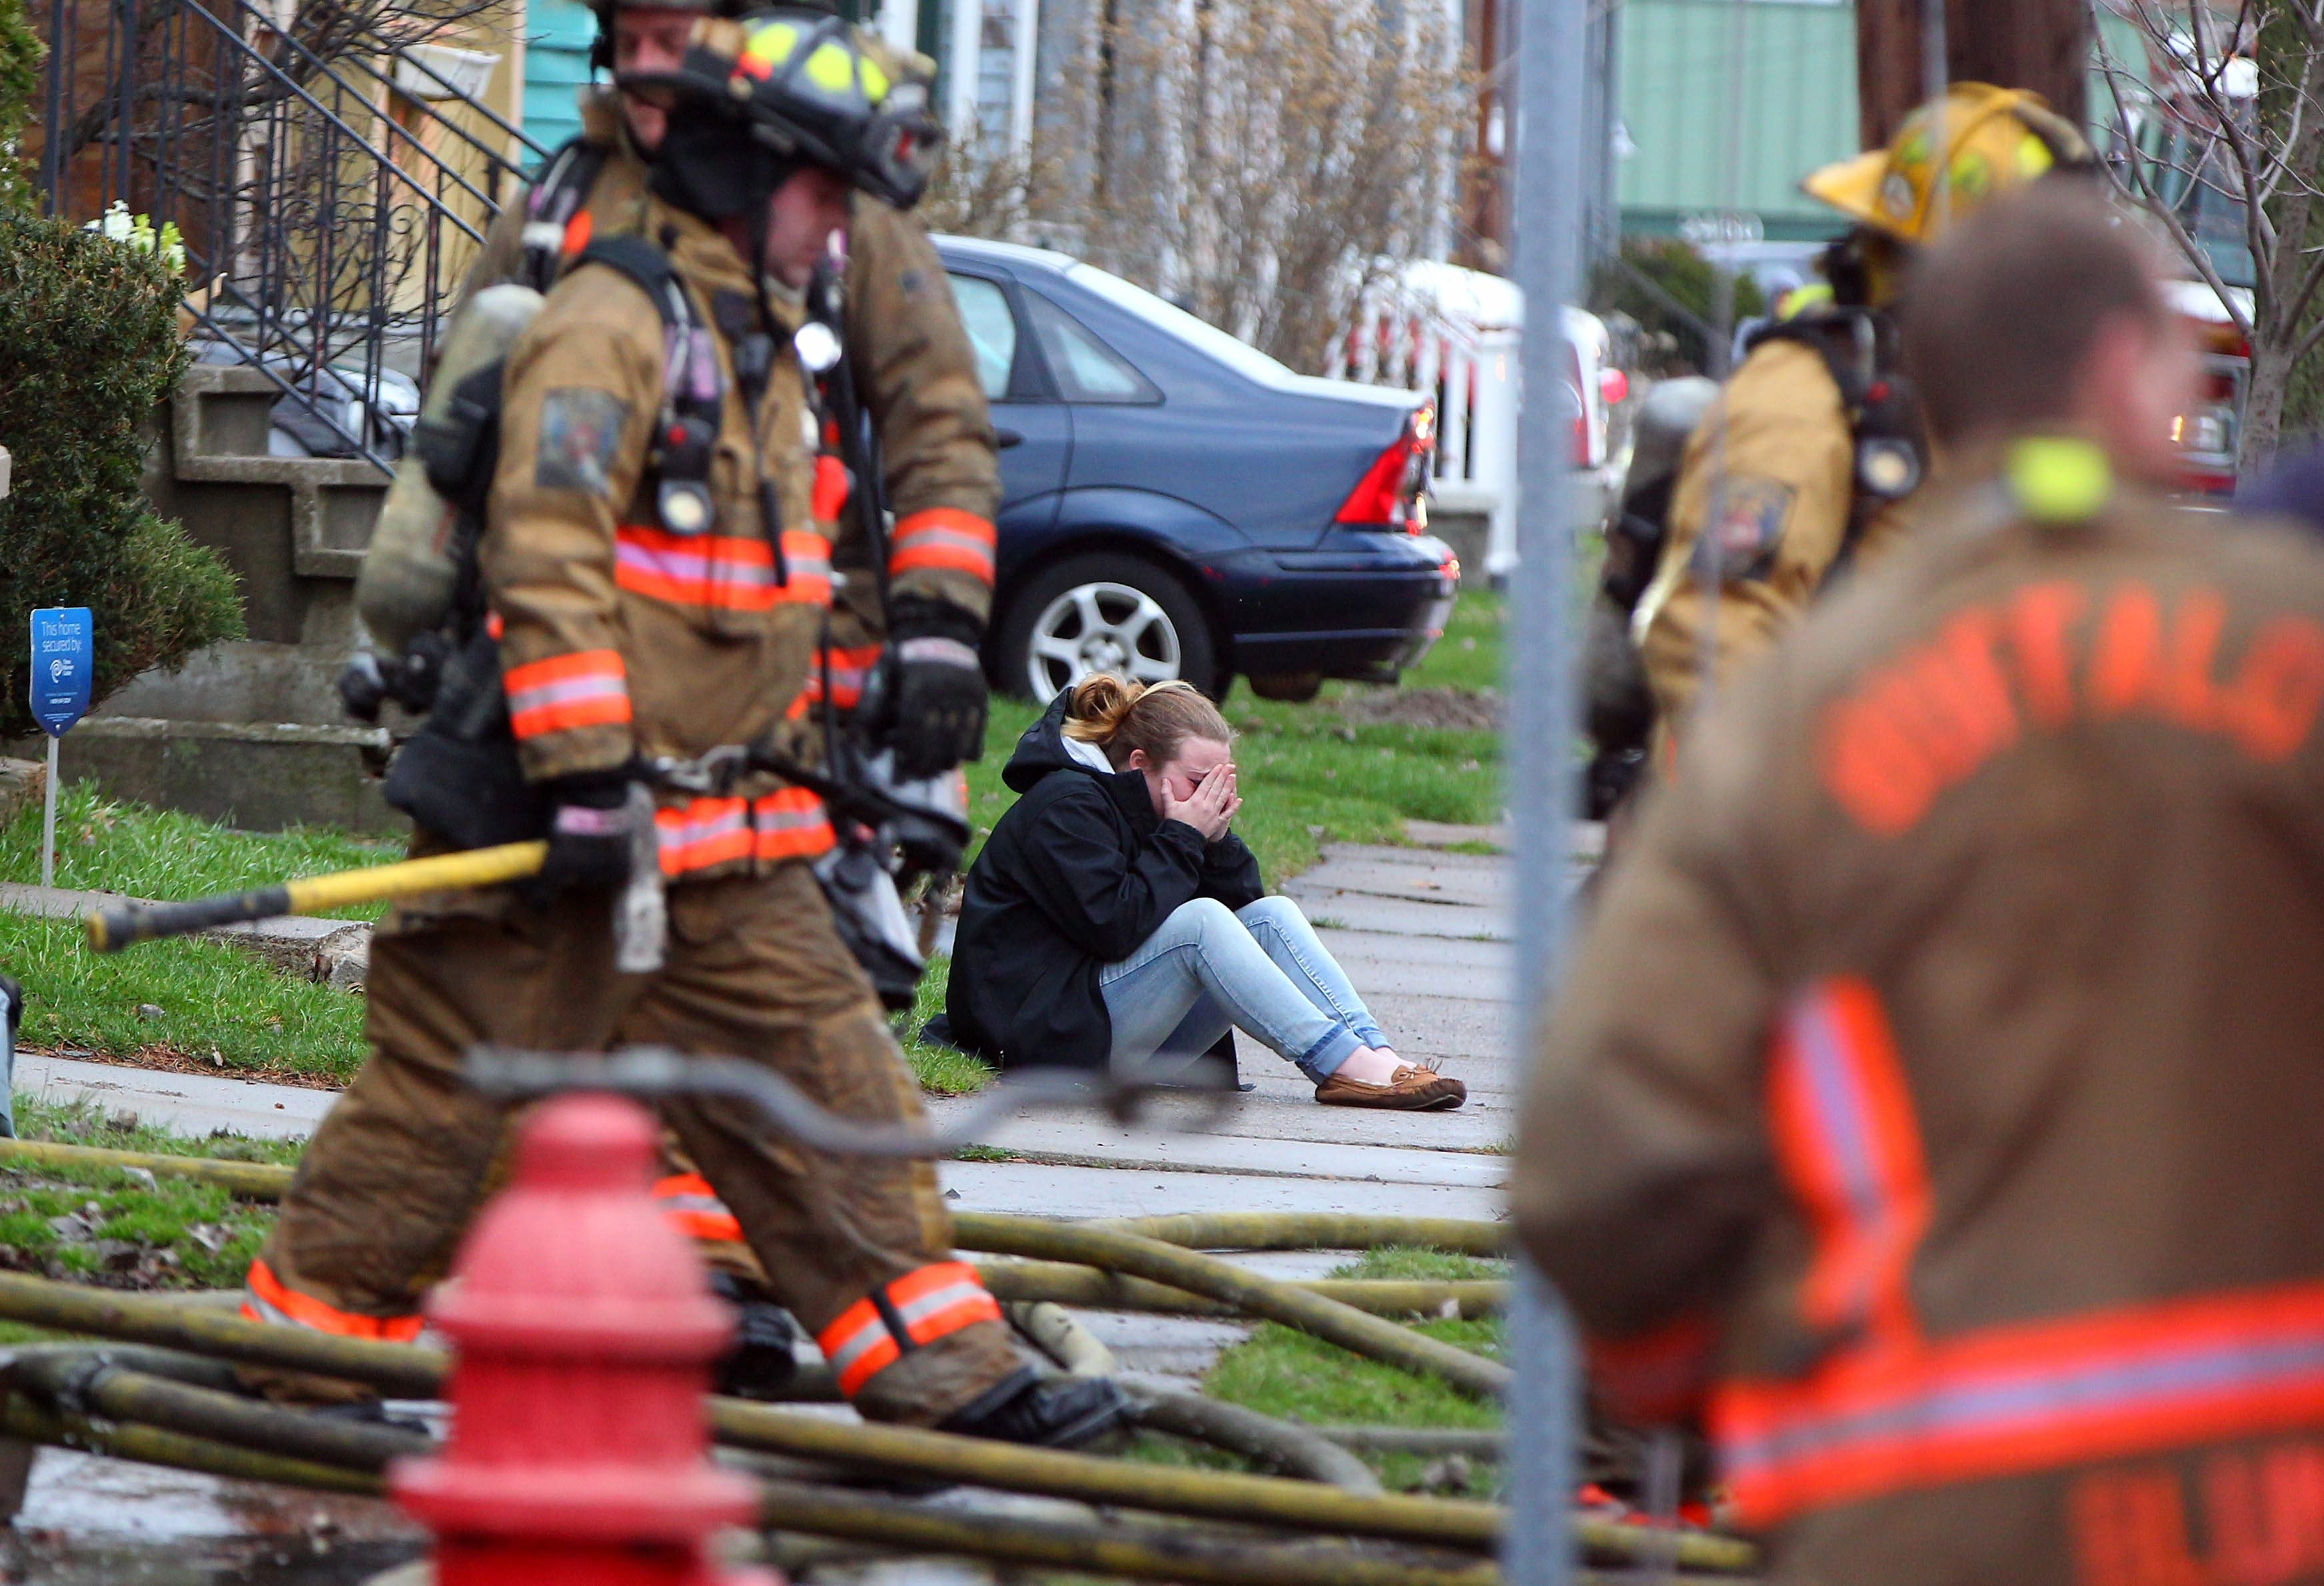 A person grieves as Buffalo firefighters work on a house fire on Wildwood Pl in Buffalo Thursday, March 31, 2016.   (Mark Mulville/Buffalo News)